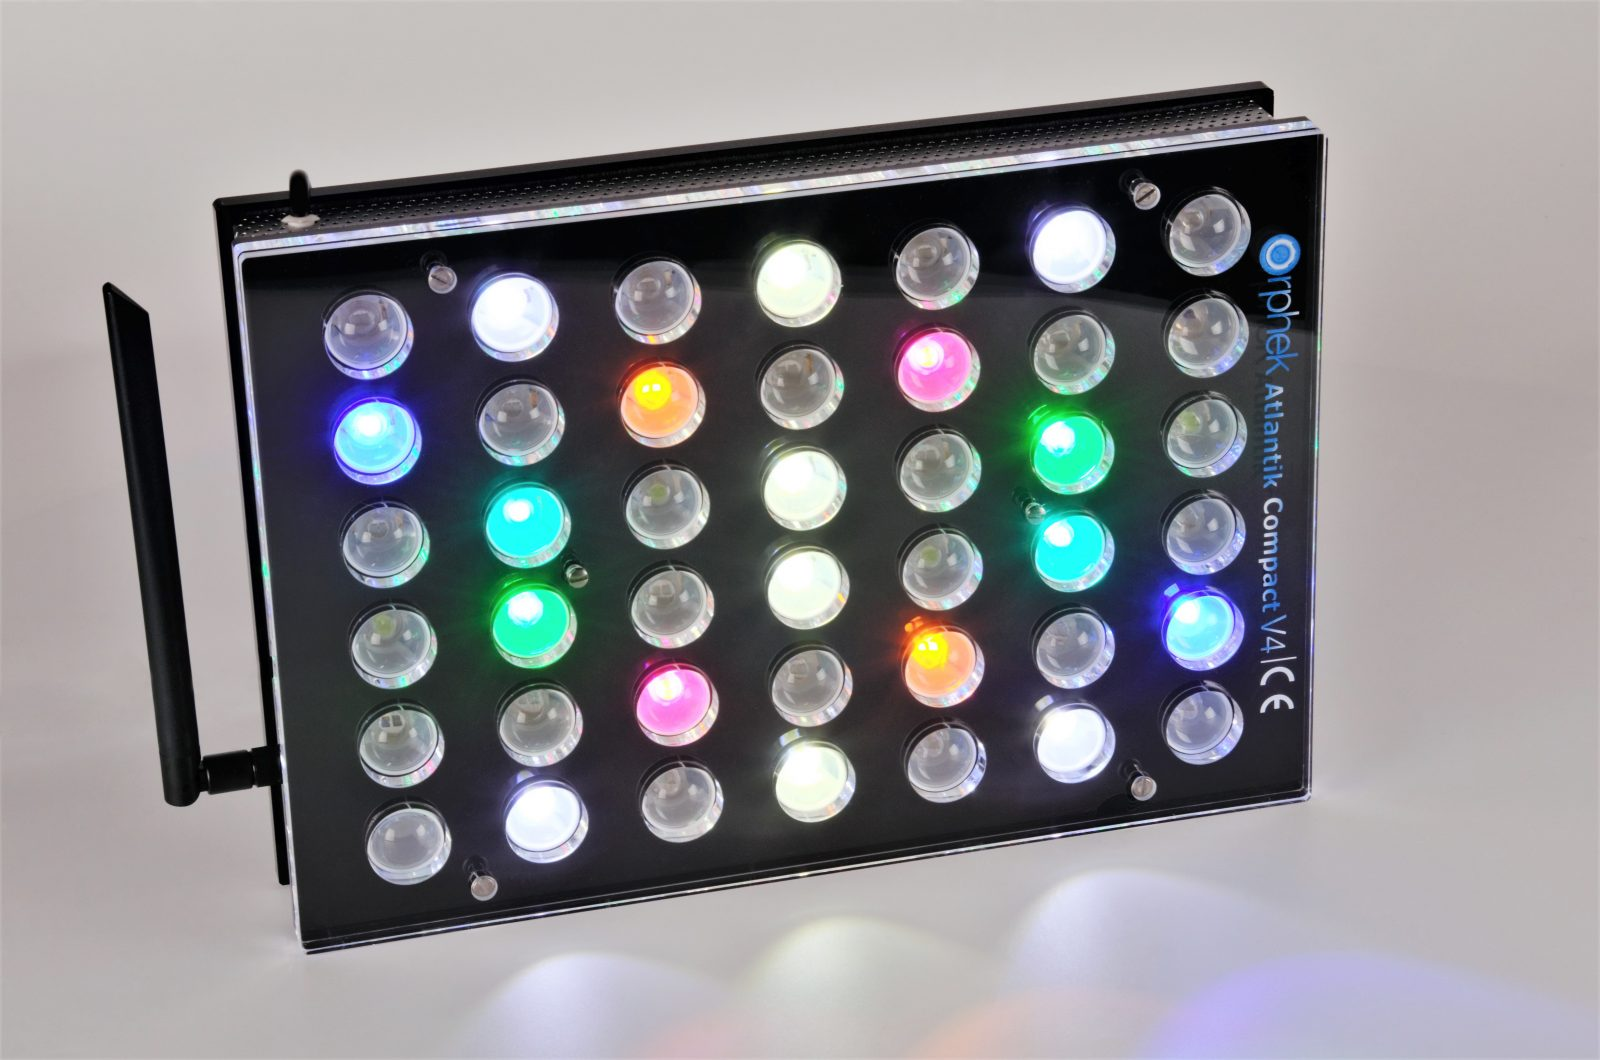 Orphek-Aquarium-LED-Lighting-Atlantik -Compact-V4-light -on-channel 1 + 4